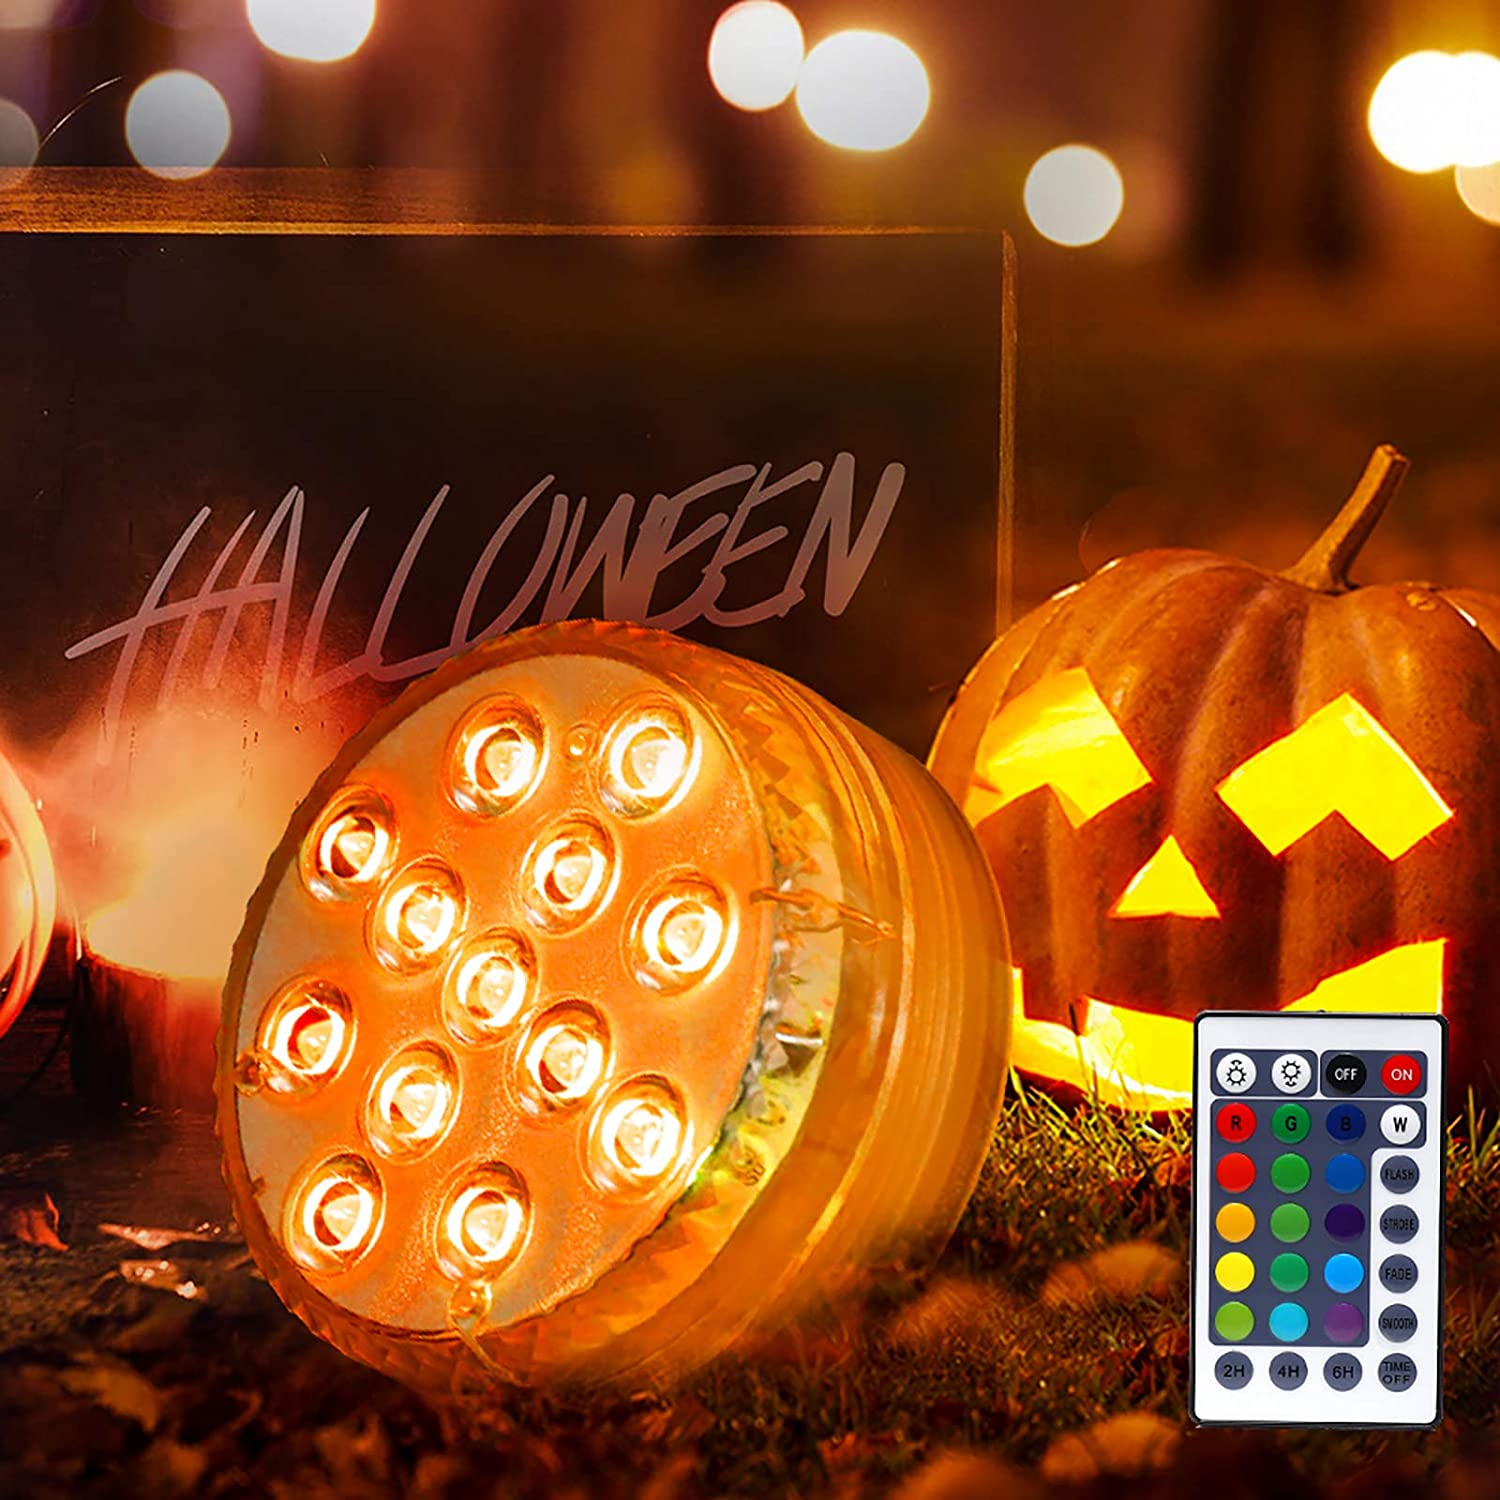 GLODD Submersible Led Lights Halloween Lights with Suction Cups,Magnet,28IR Remote,Battery Operated LED Pool Lights IP68 Waterproof Light for Halloween Thanksgiving Christmas Decoration